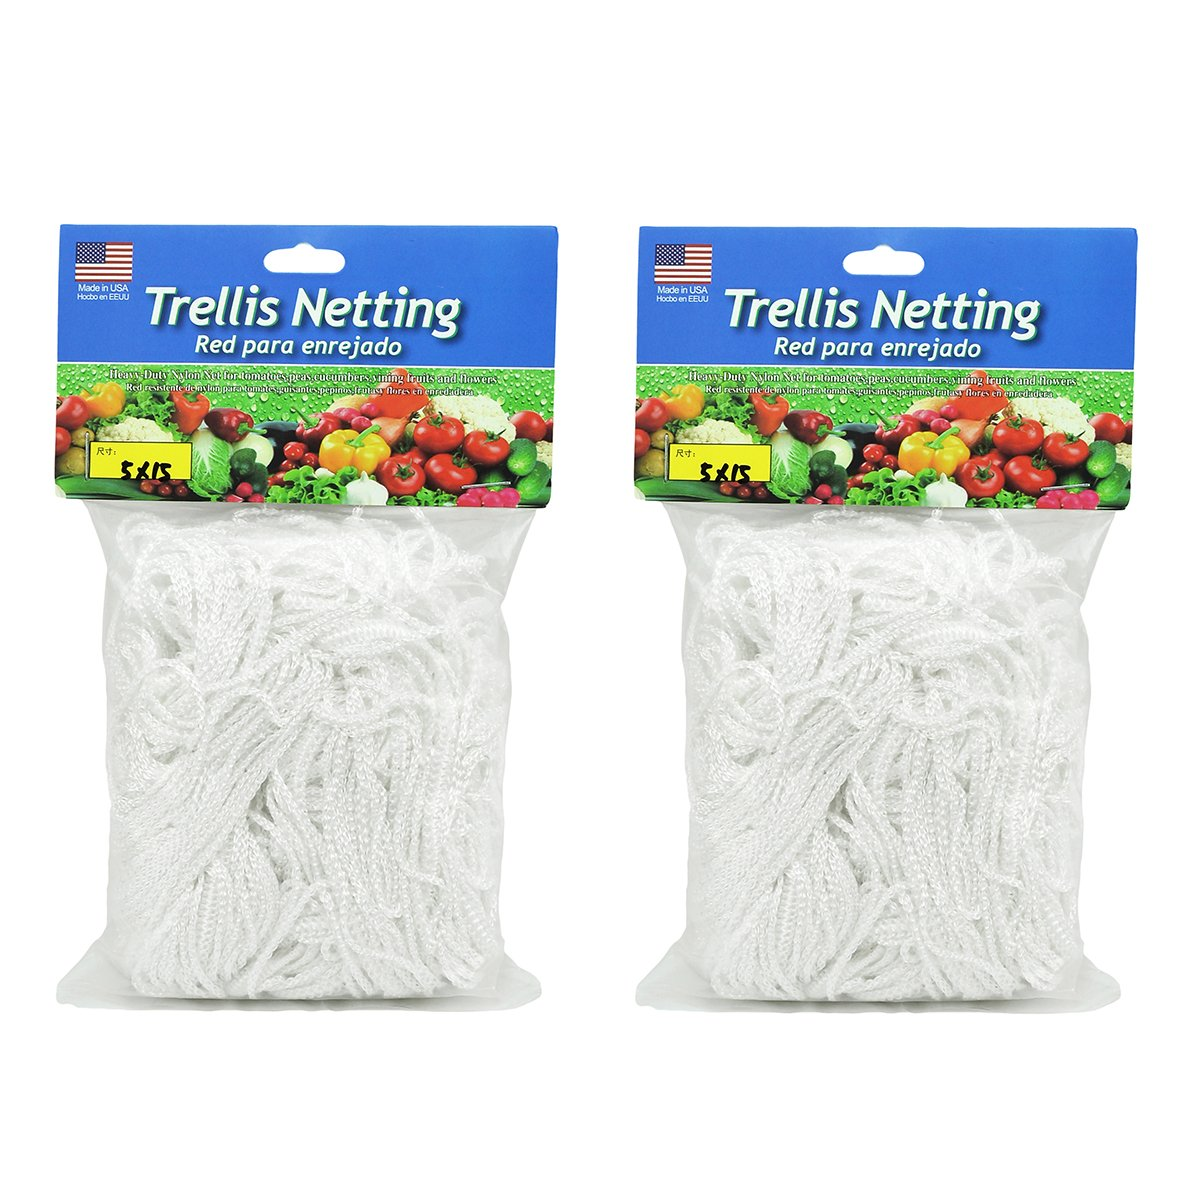 HiHydro Trellis Netting Heavy-Duty Nylon Tangle-Free White Garden Net for Climbing, Fruits, Vegetables and Flowers (2-Pack 5'x15')